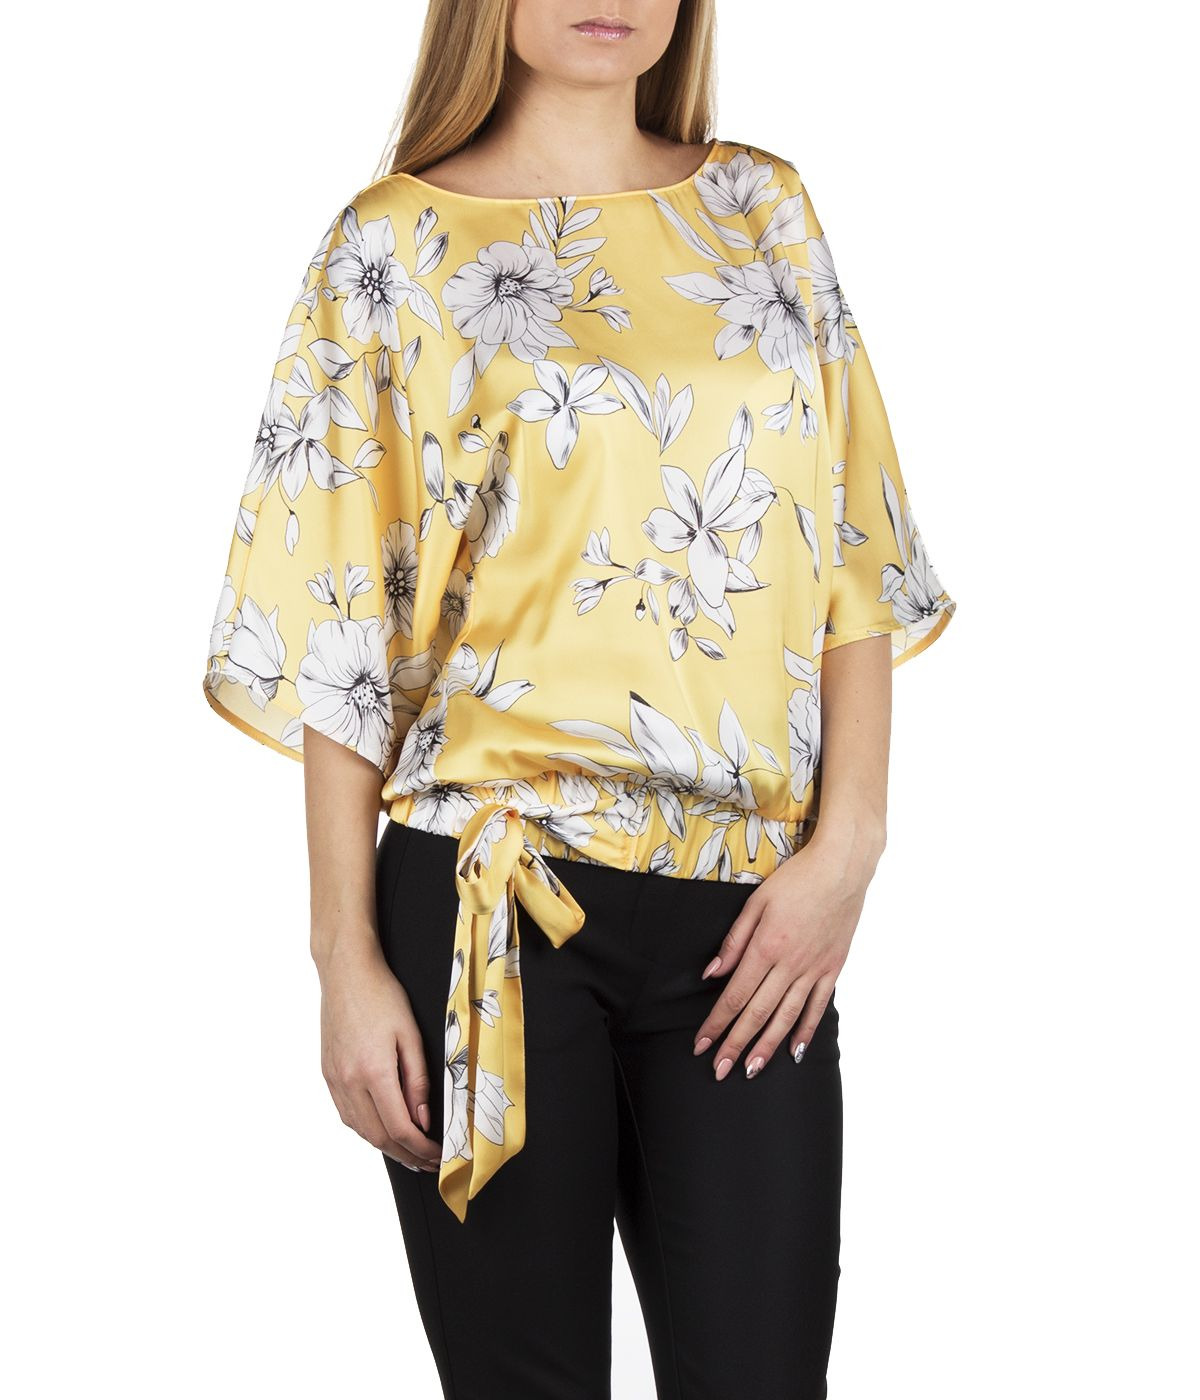 Short-sleeved blouse with tie-hem finish and flowers print 2